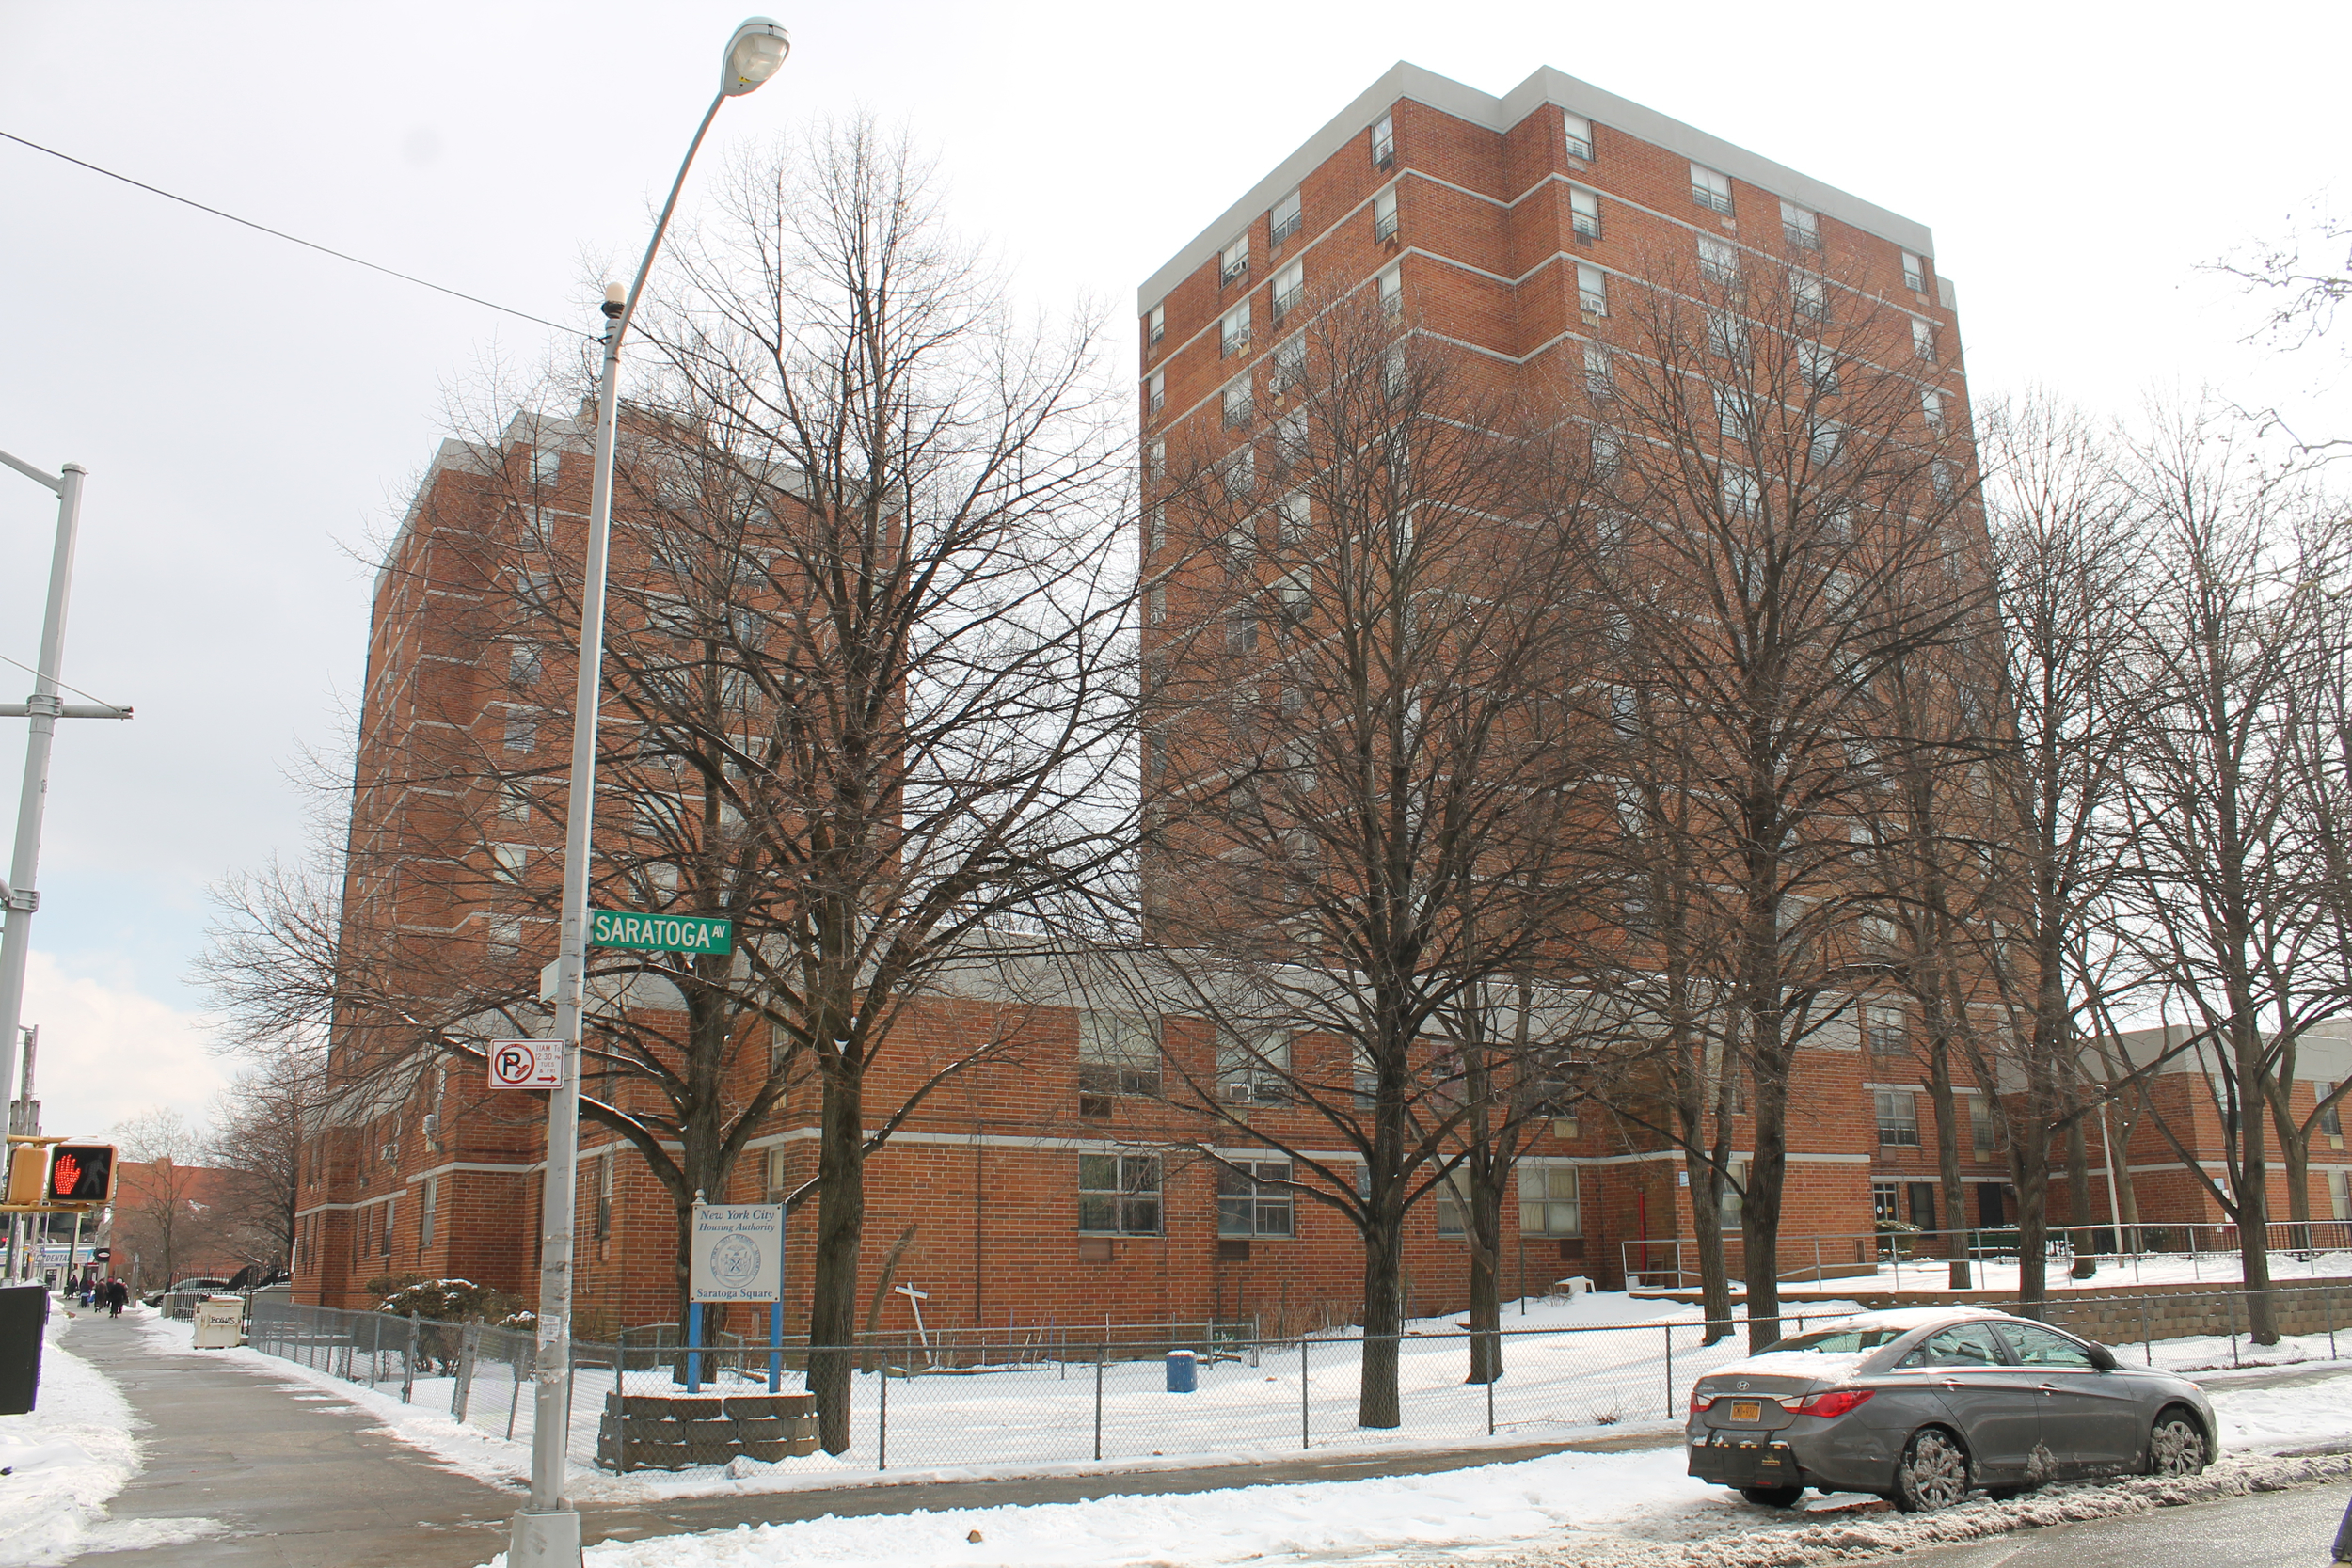 930 Halsey Street, at left, and 55 Saratoga Avenue, at right, as seen on March 2, 2015. Source : Louis Flores